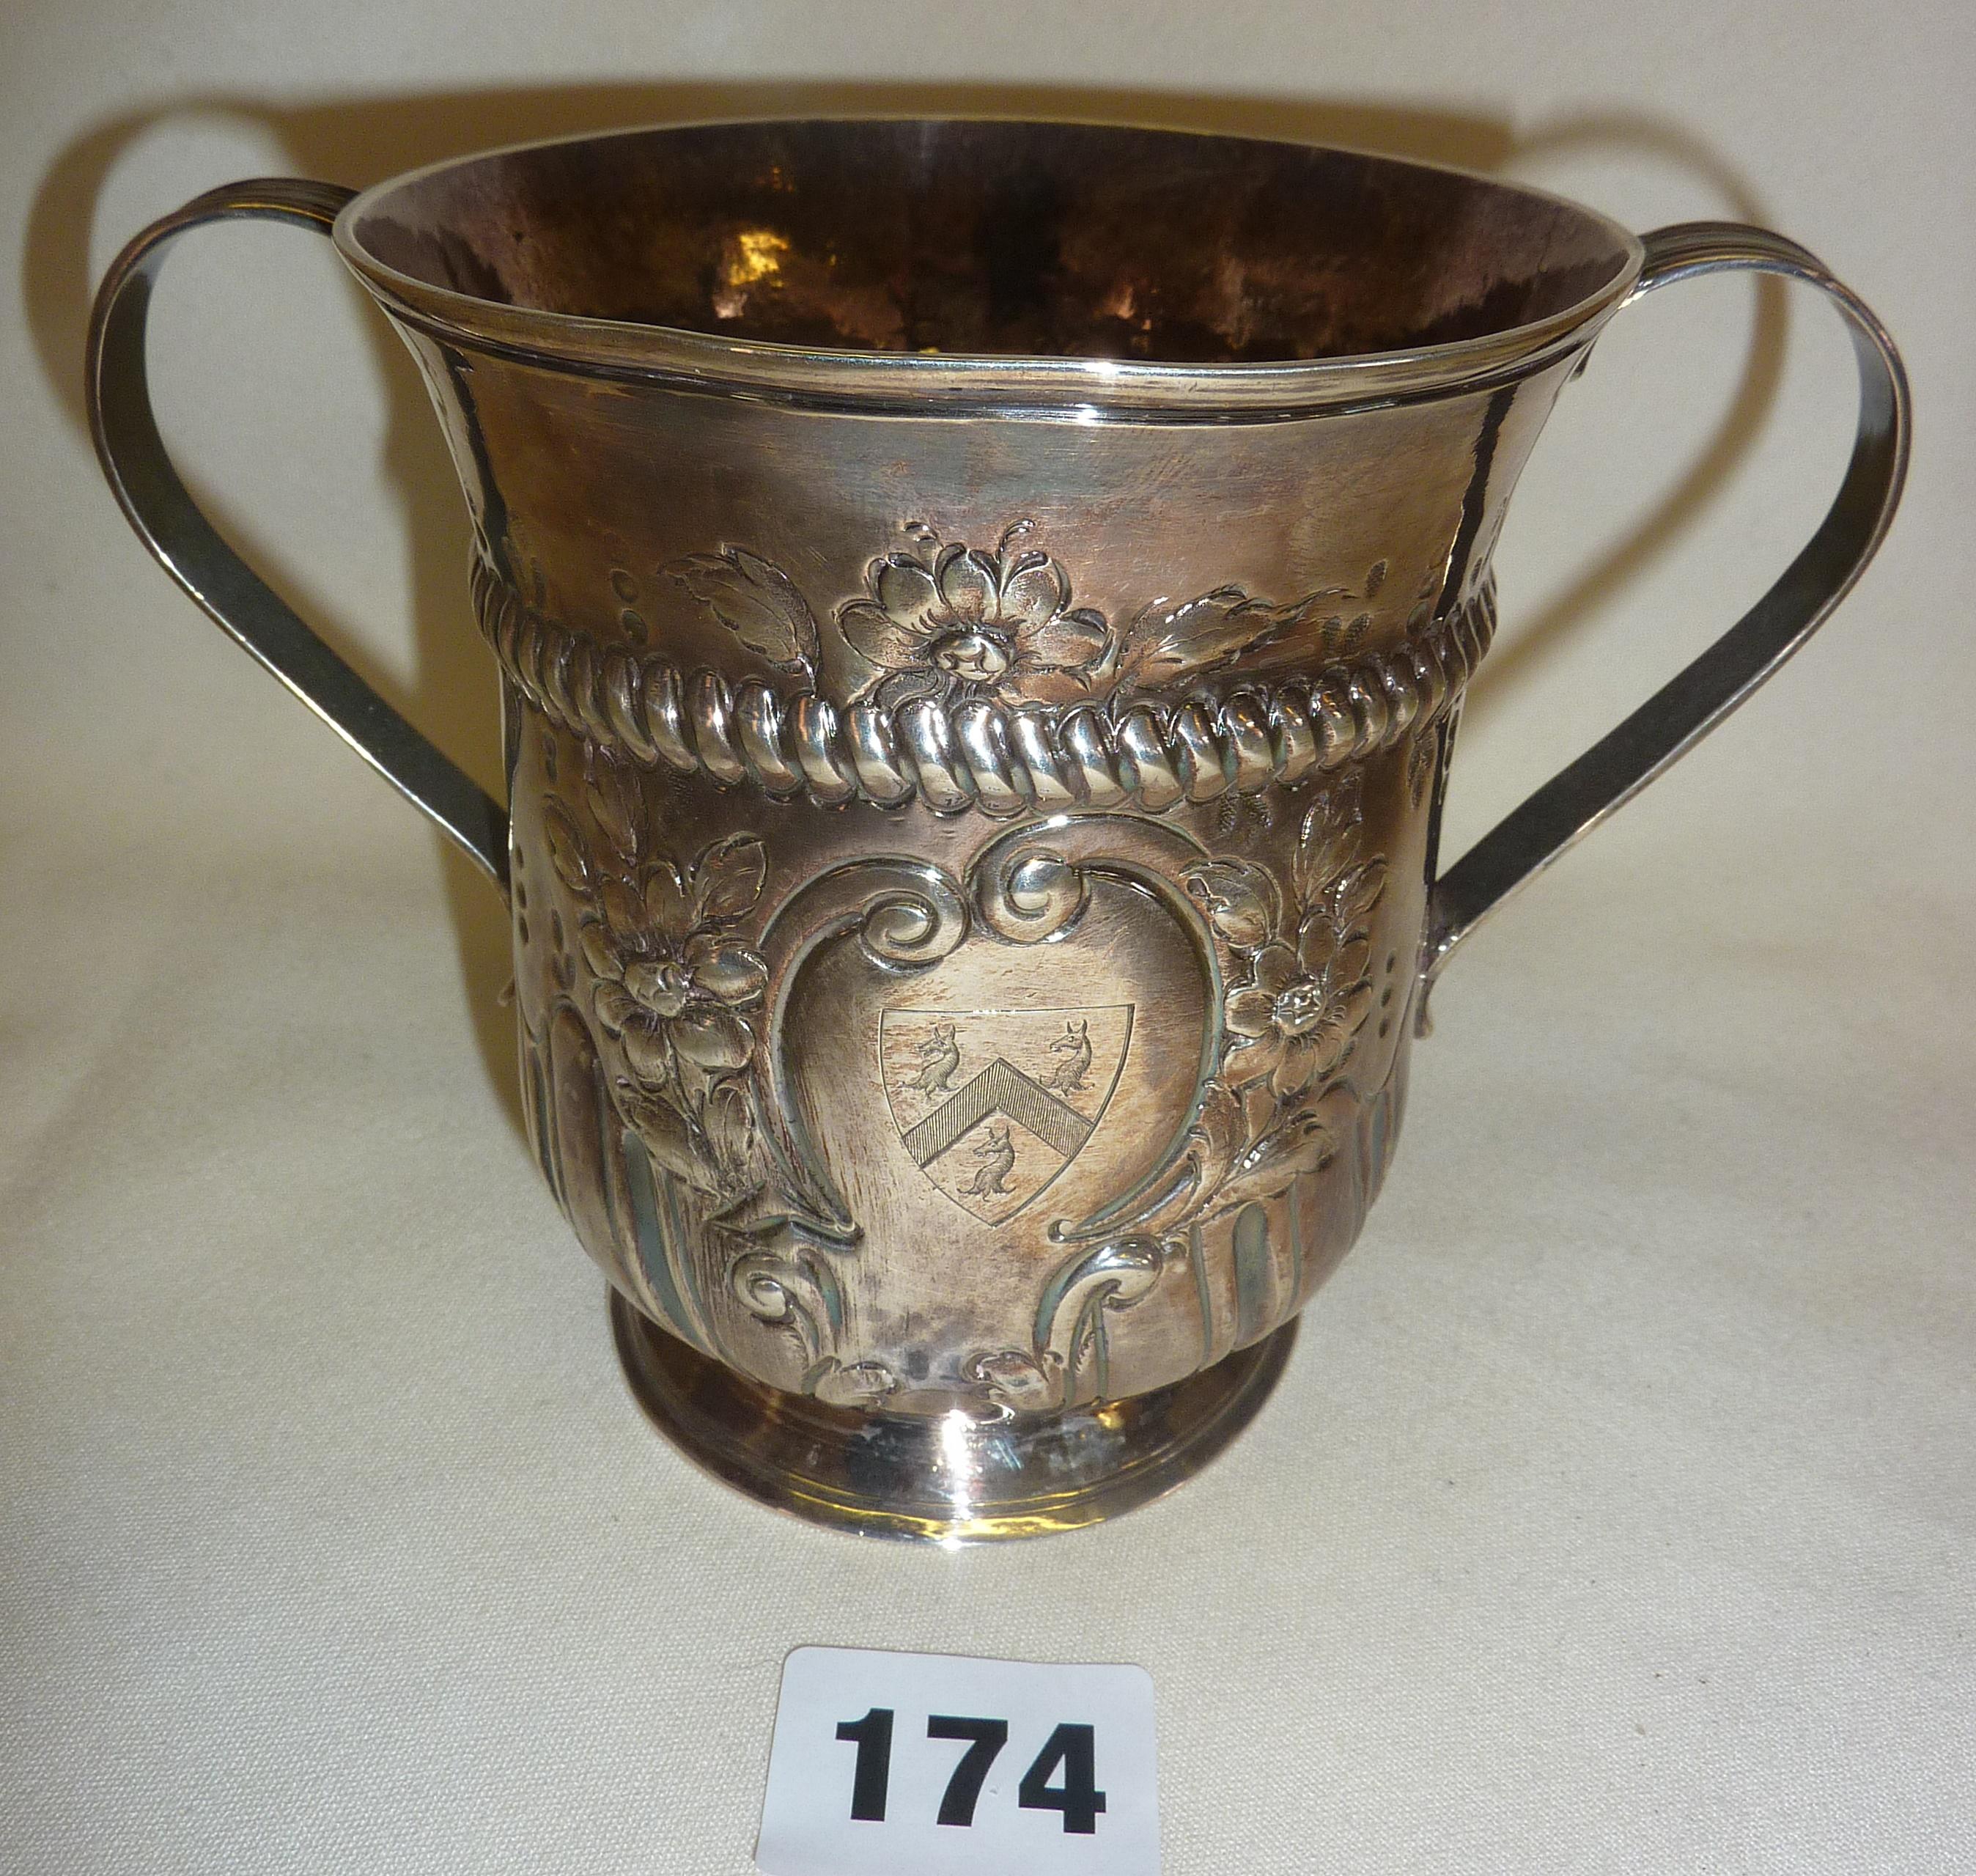 George III hallmarked silver porringer or loving cup with later engraved heraldic shield, by John